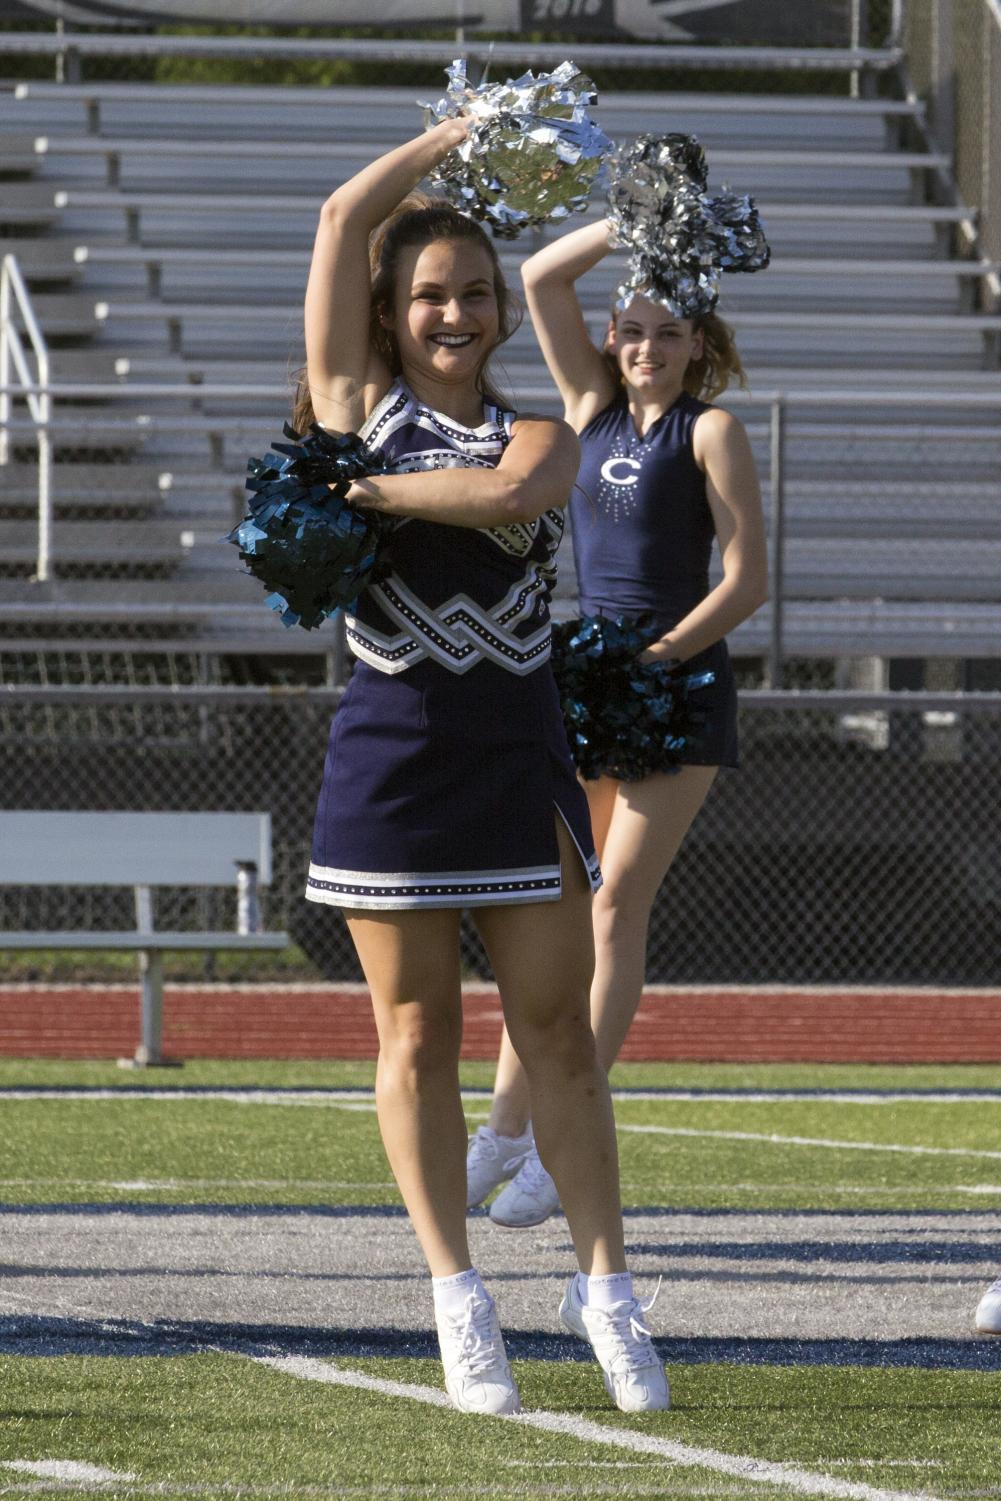 Callie Bratsch worked hard perfecting a dance routine. Bratsch spends long hours at hard practices to nail each routine.